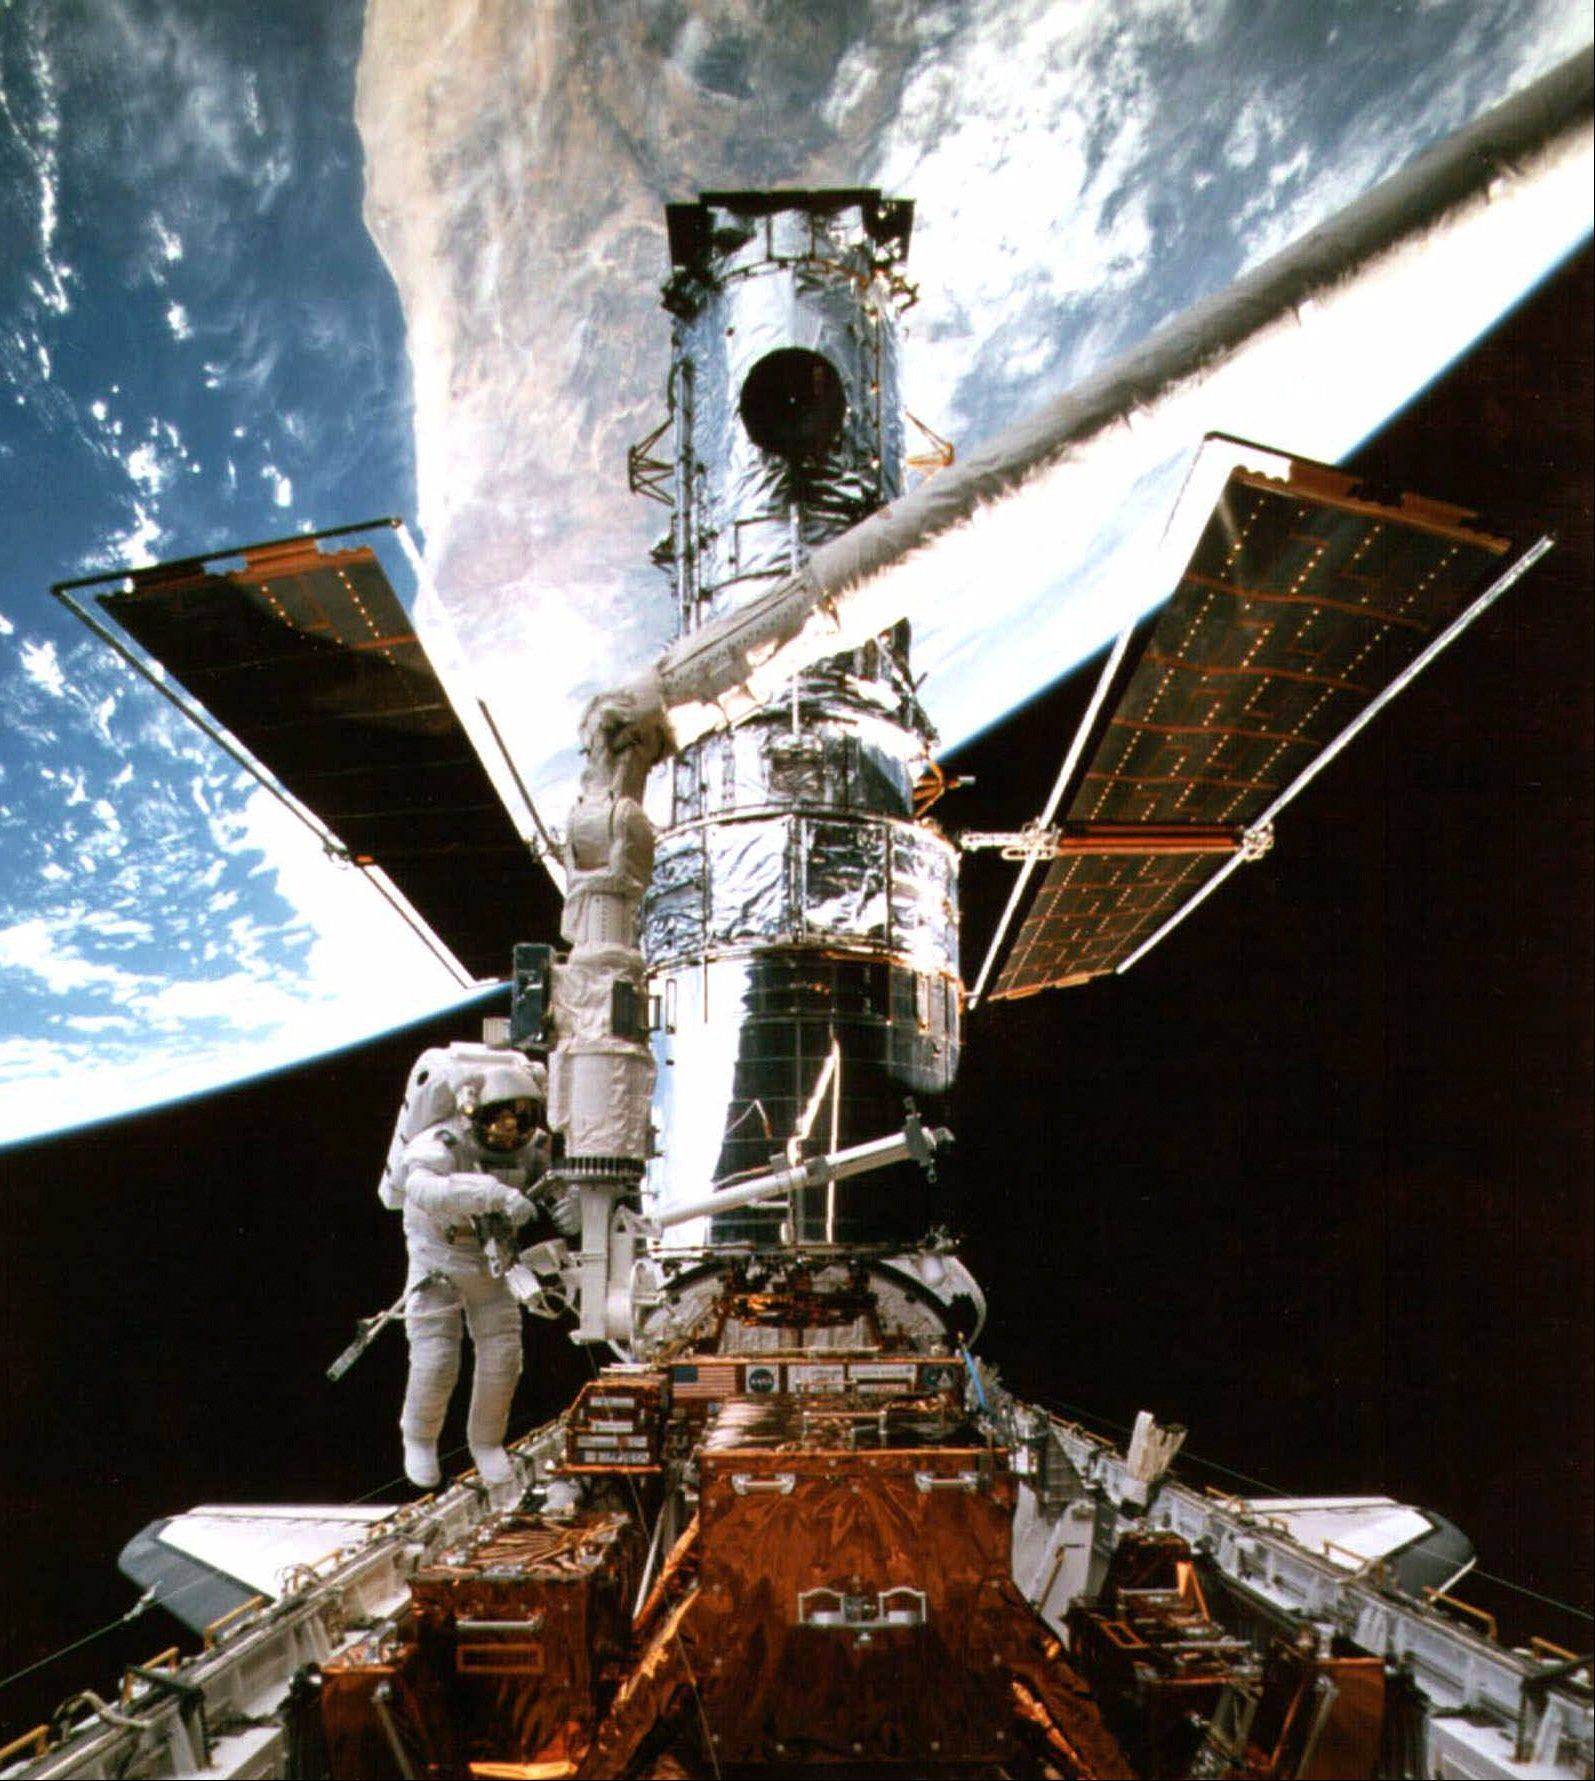 In this Feb. 15, 1997 picture provided by NASA, astronaut Steven Smith works at the end of the space shuttle's remote manipulator system as he performs maintenance on the Hubble Space Telescope during a spacewalk. In the background is a portion of Australia along the Earth's curve.